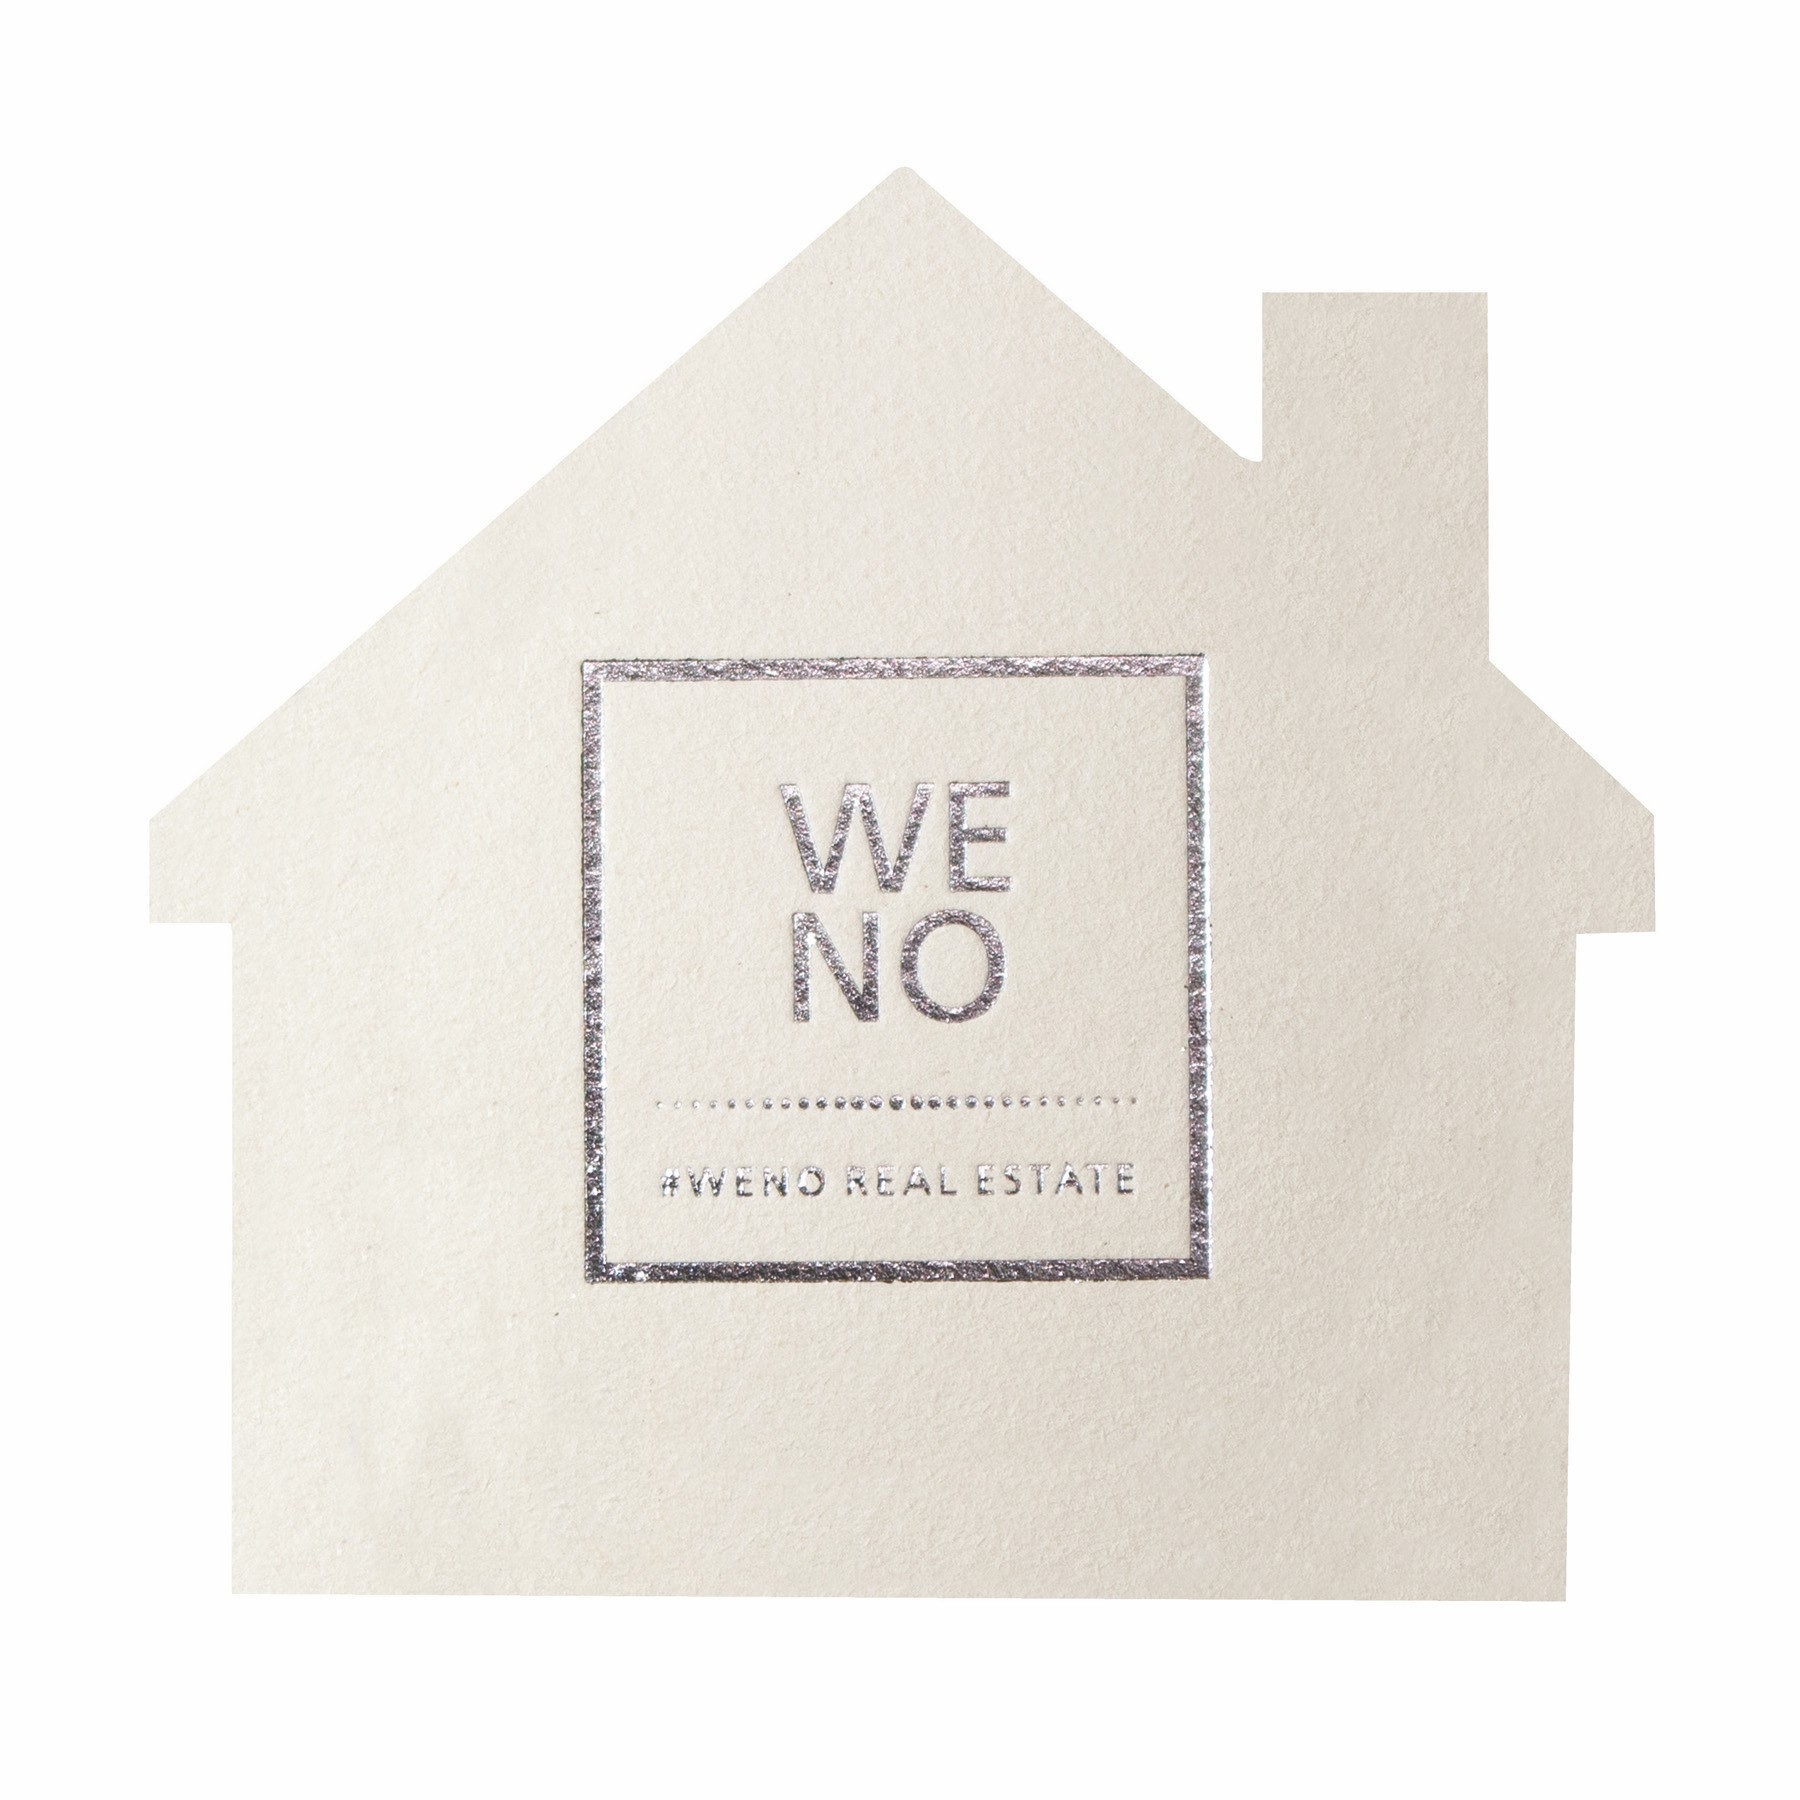 Foil Stamped 40 pt., House - White High Density Coasters - The 500 Line